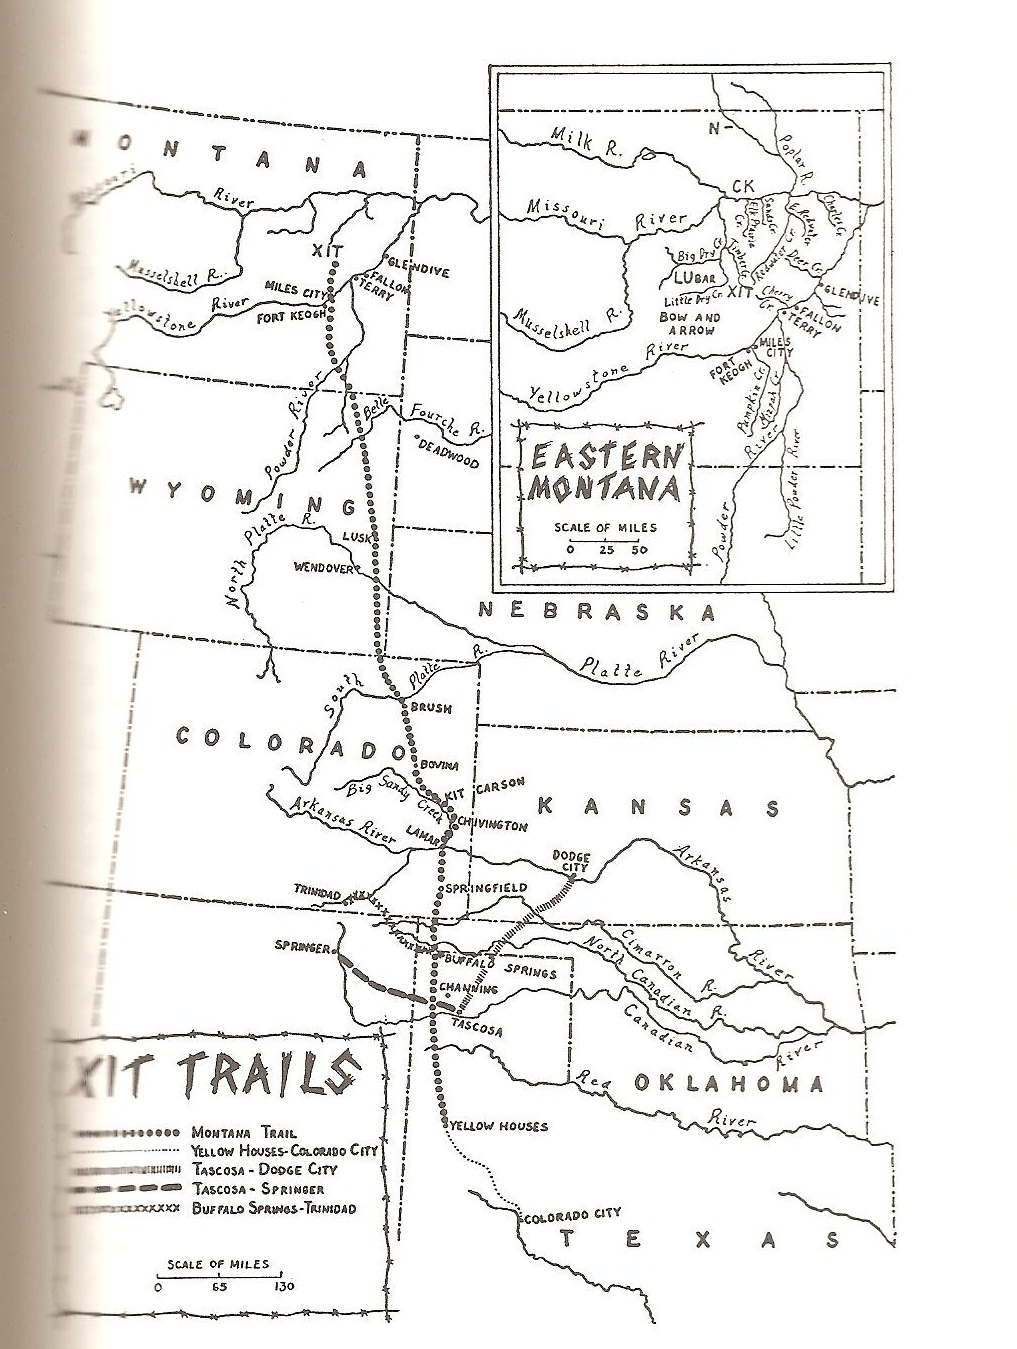 Map Of Xit Ranch Texas.Texas Ranches Xit Montana Trail